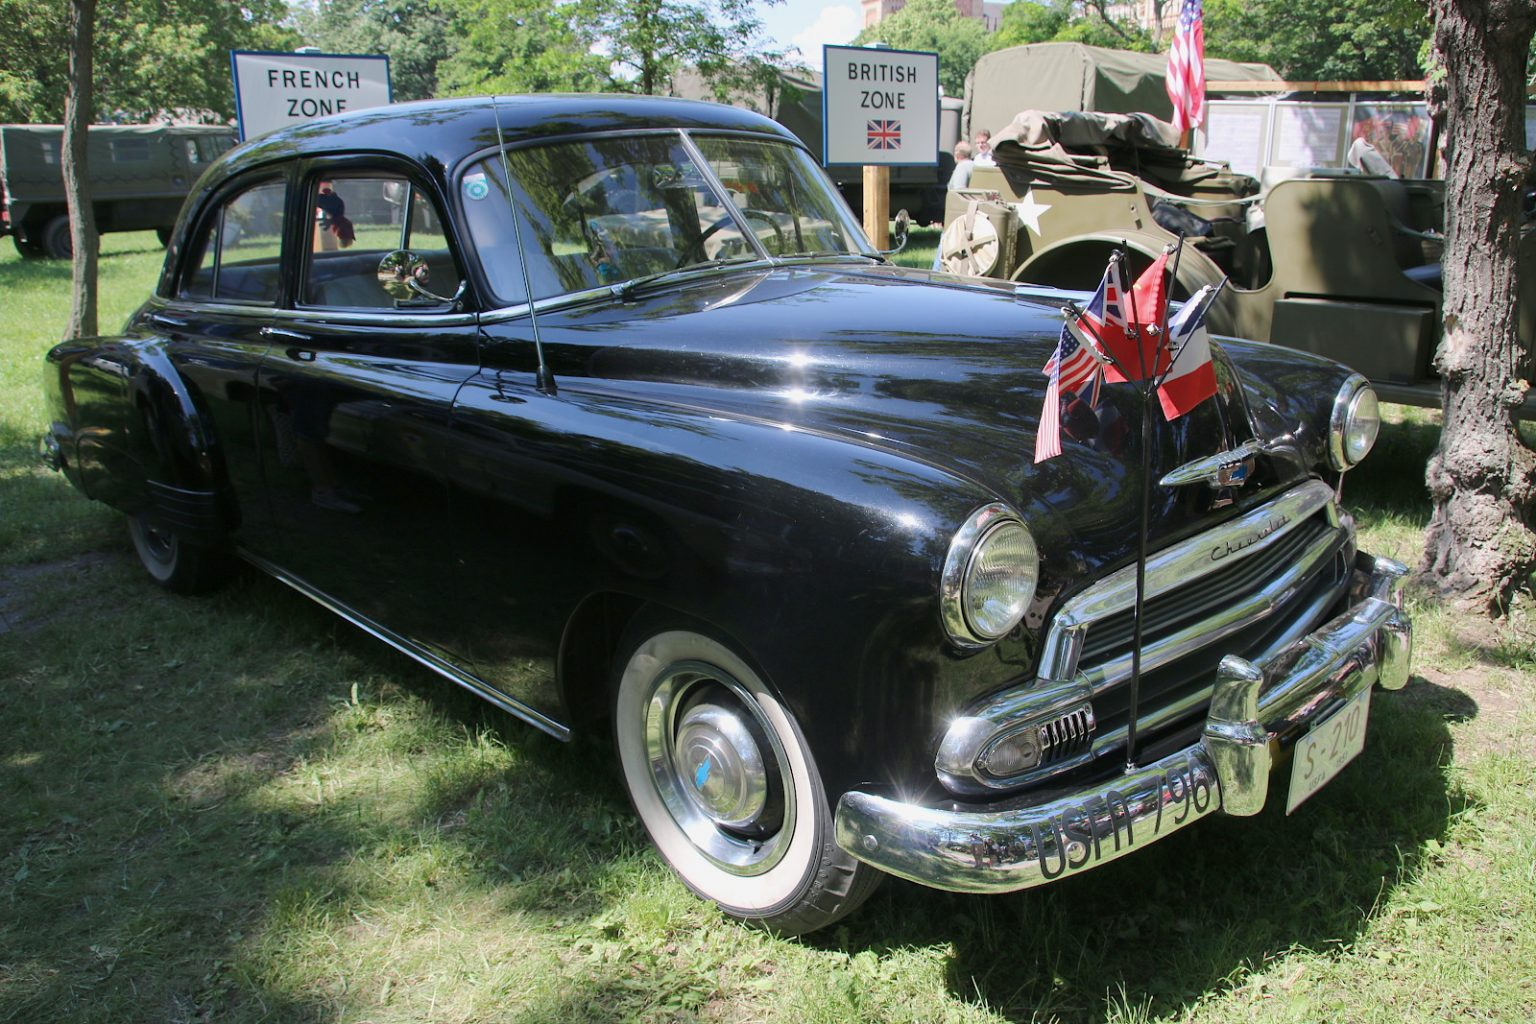 Chevrolet Special Series Six 1500 JJ Styleline, 4 door Sedan (1952 – 1955) © Doppeladler.com